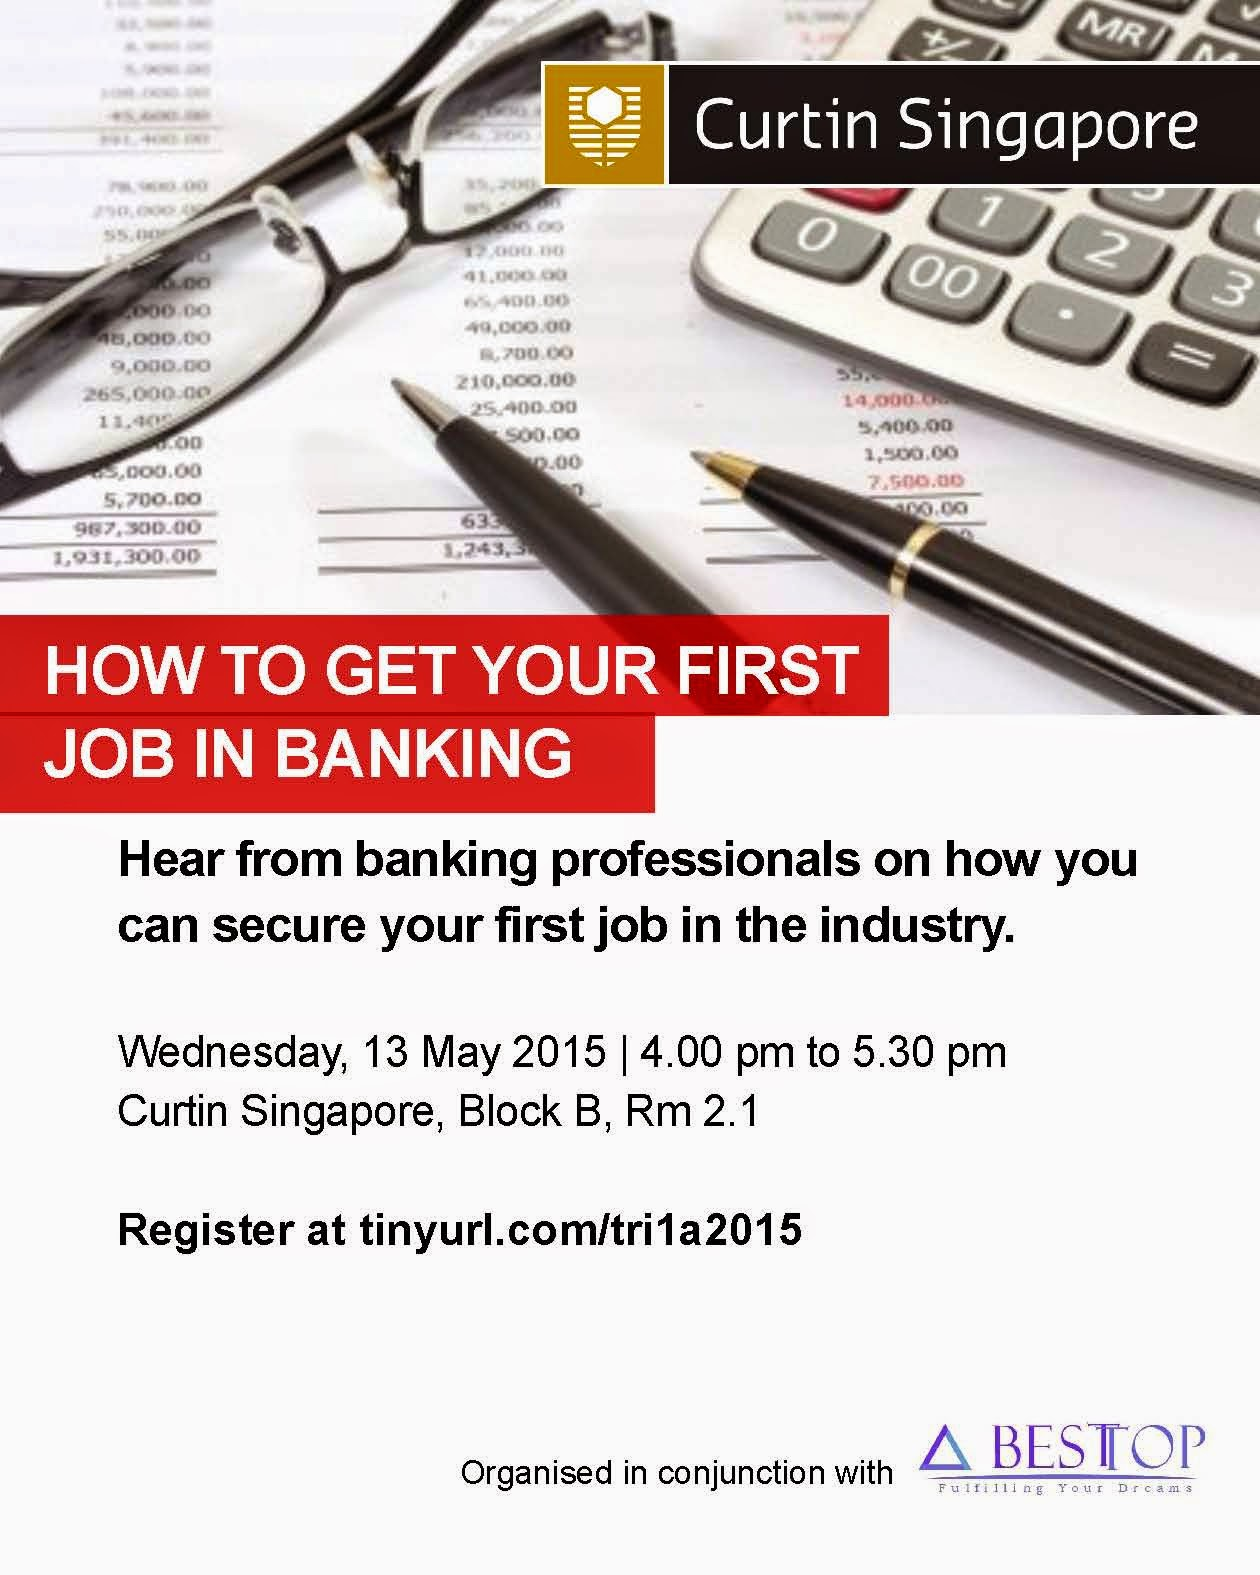 besttop career consulting job posting blog besttop x curtin besttop x curtin university career talk65306how to get your first job in banking